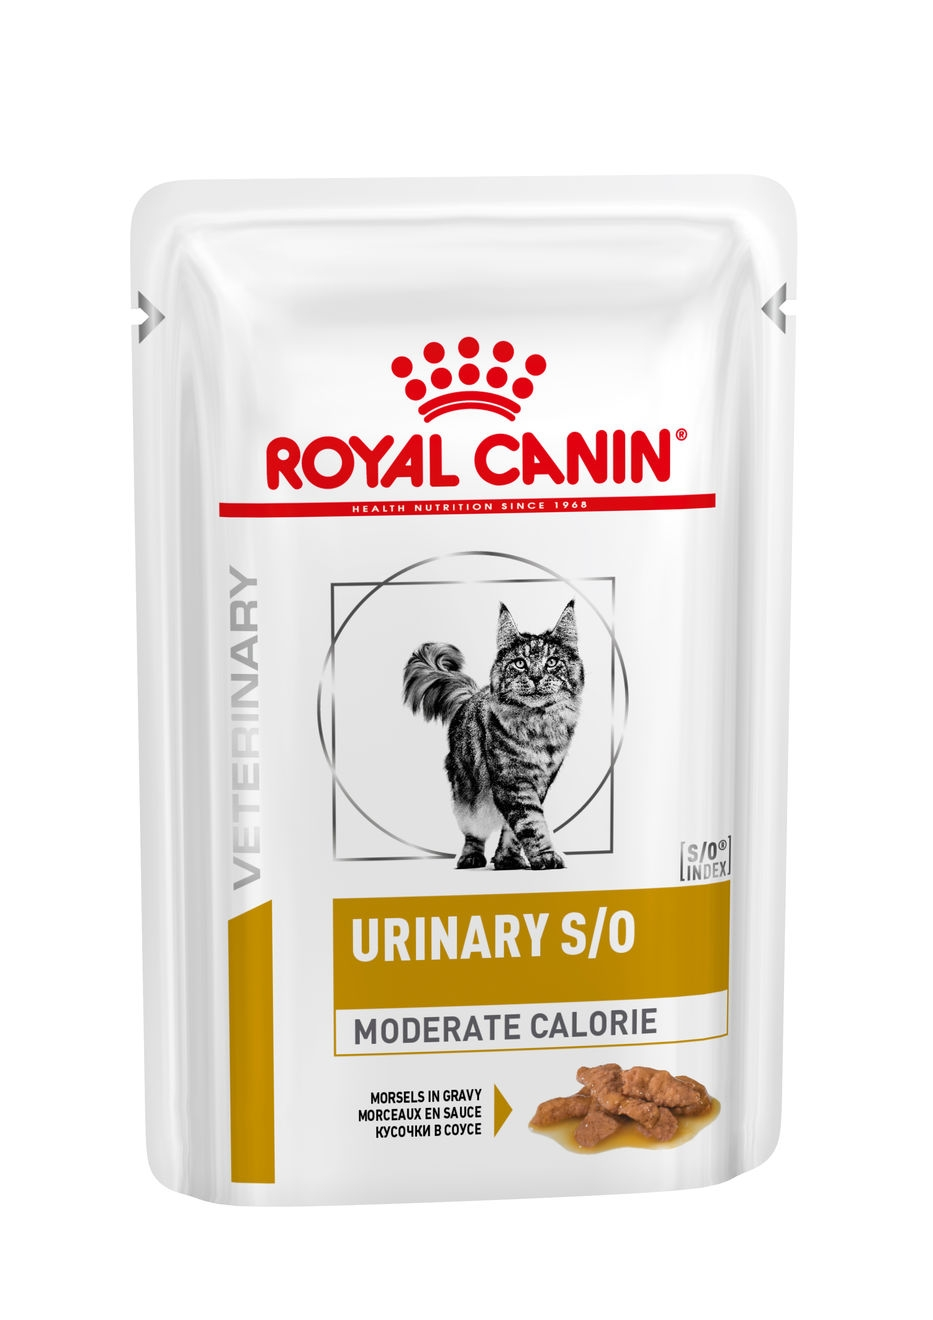 ROYAL CANIN Veterinary Diet - Urinary S/O Moderate Calorie - 12 x 85g